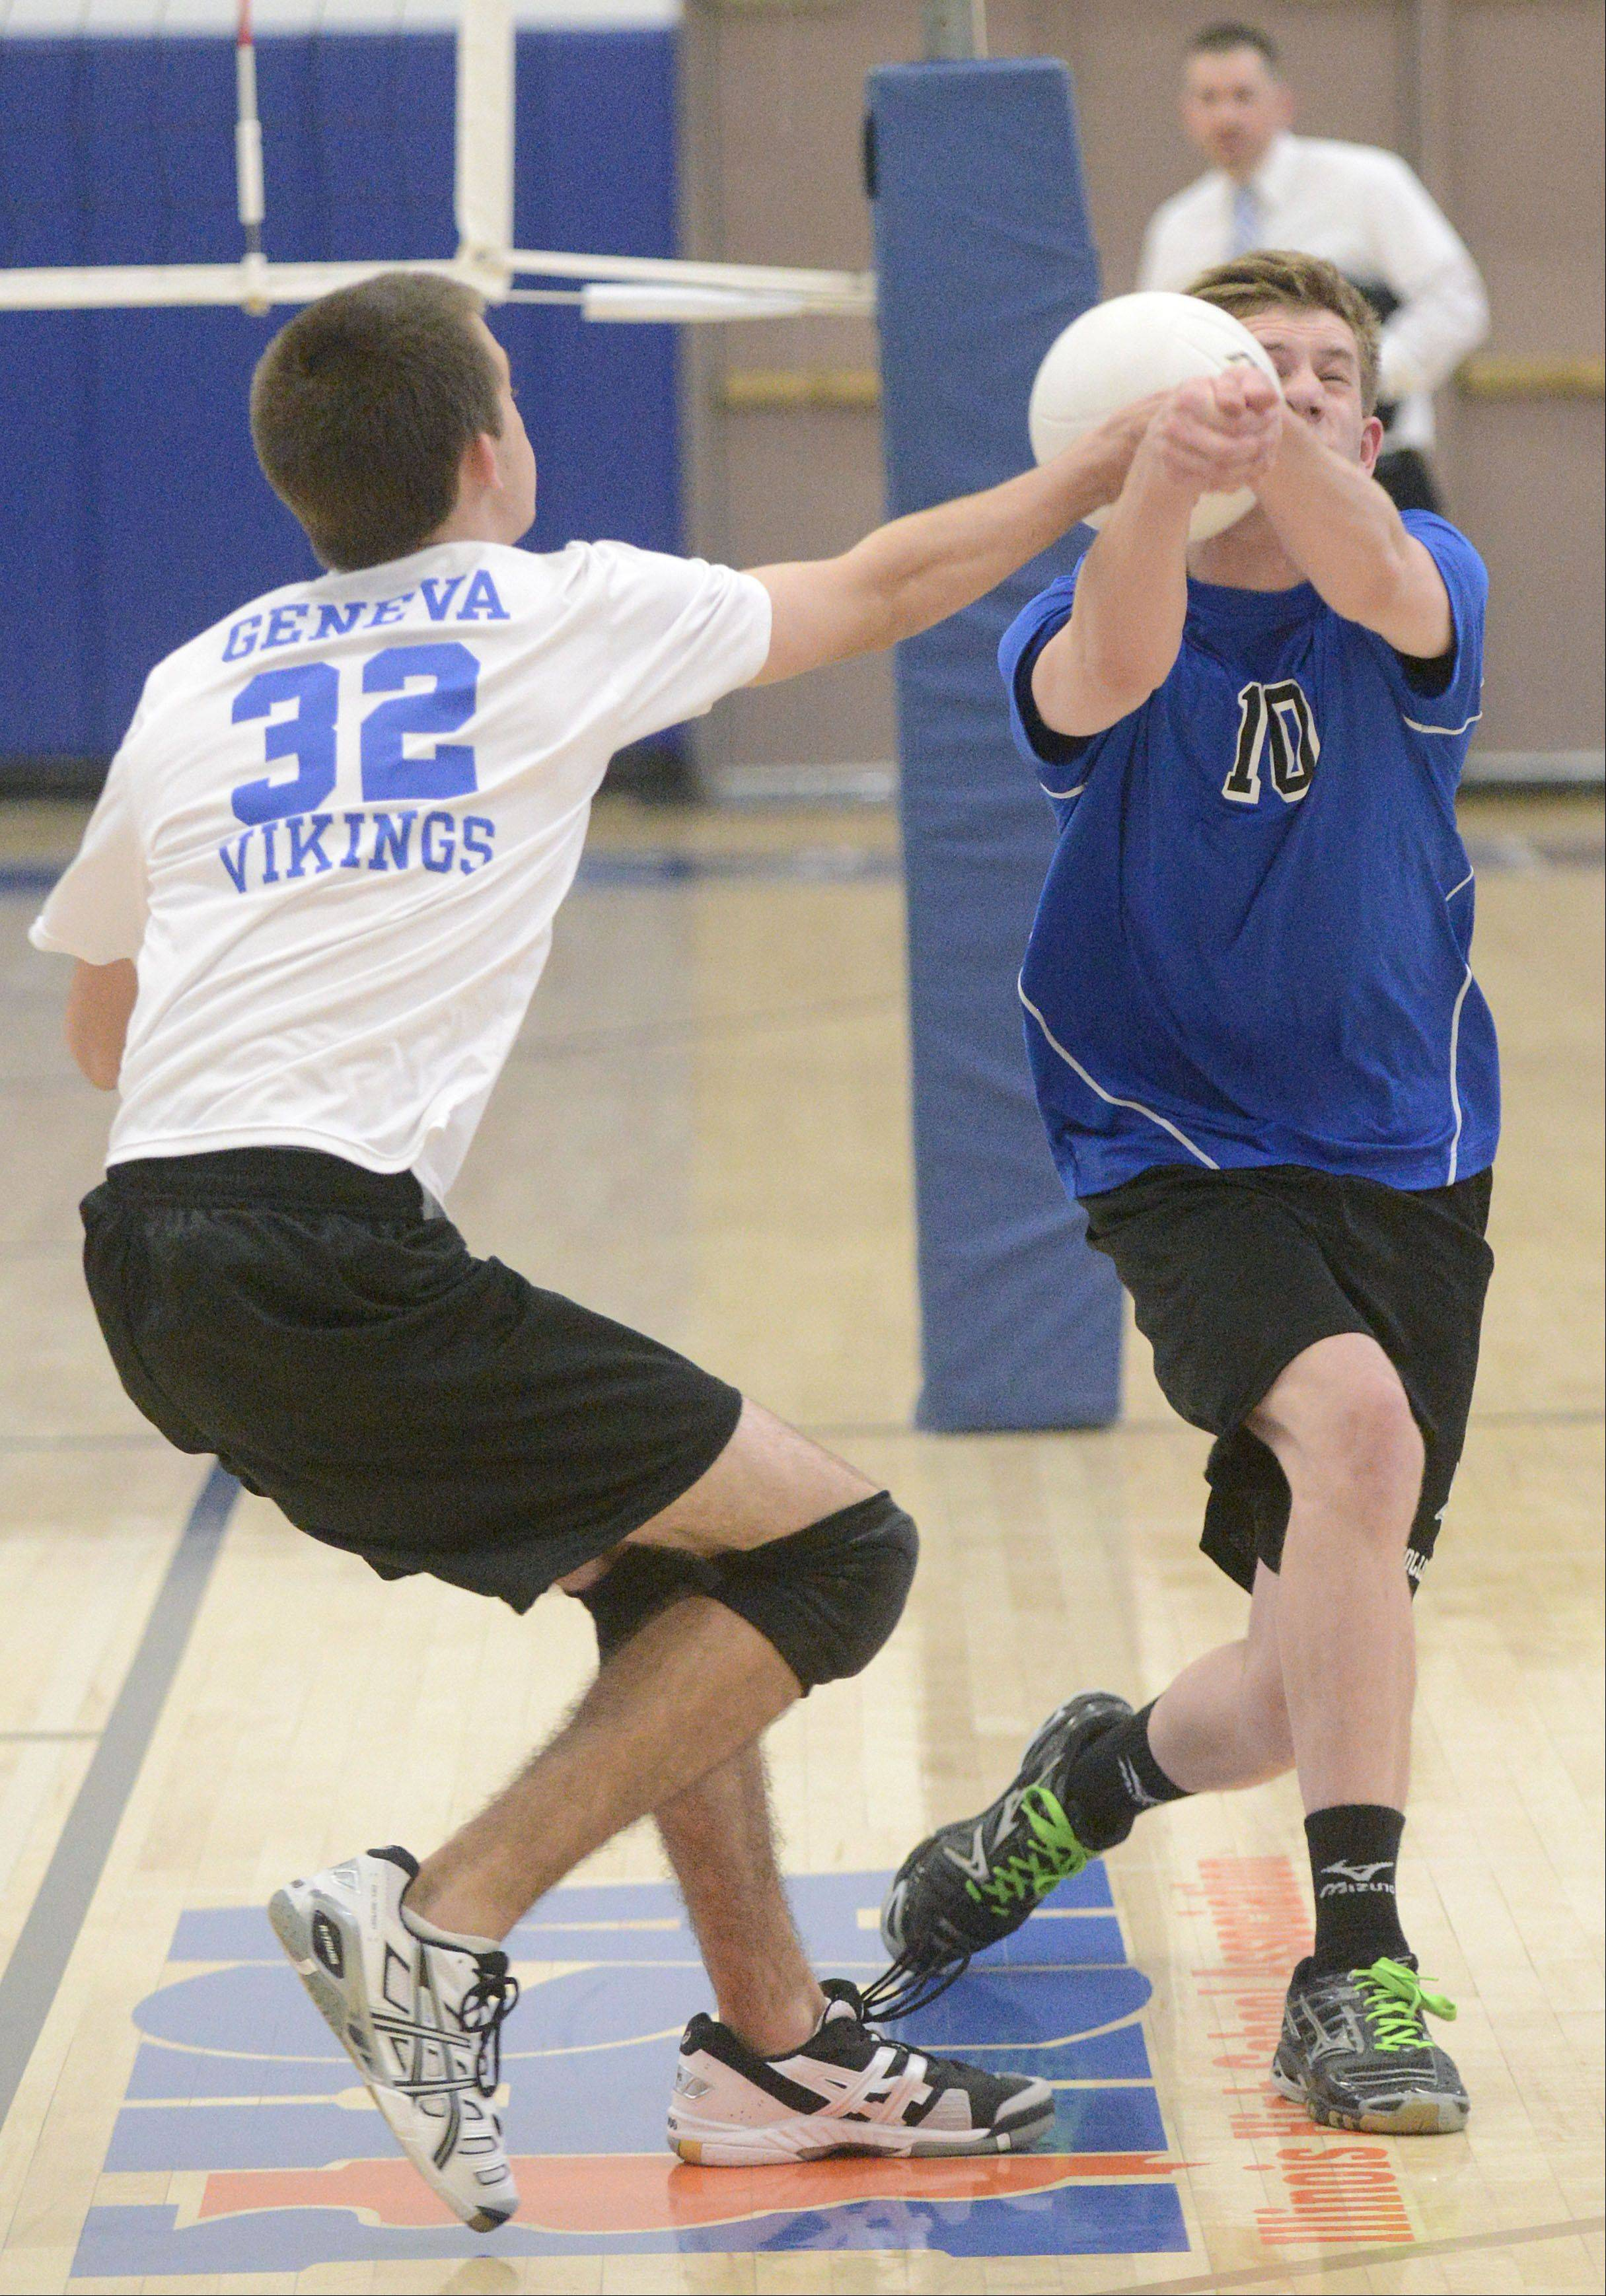 Geneva�s Brandon Navigato and Nathan Jesko collide in the first match on Tuesday, May 7.